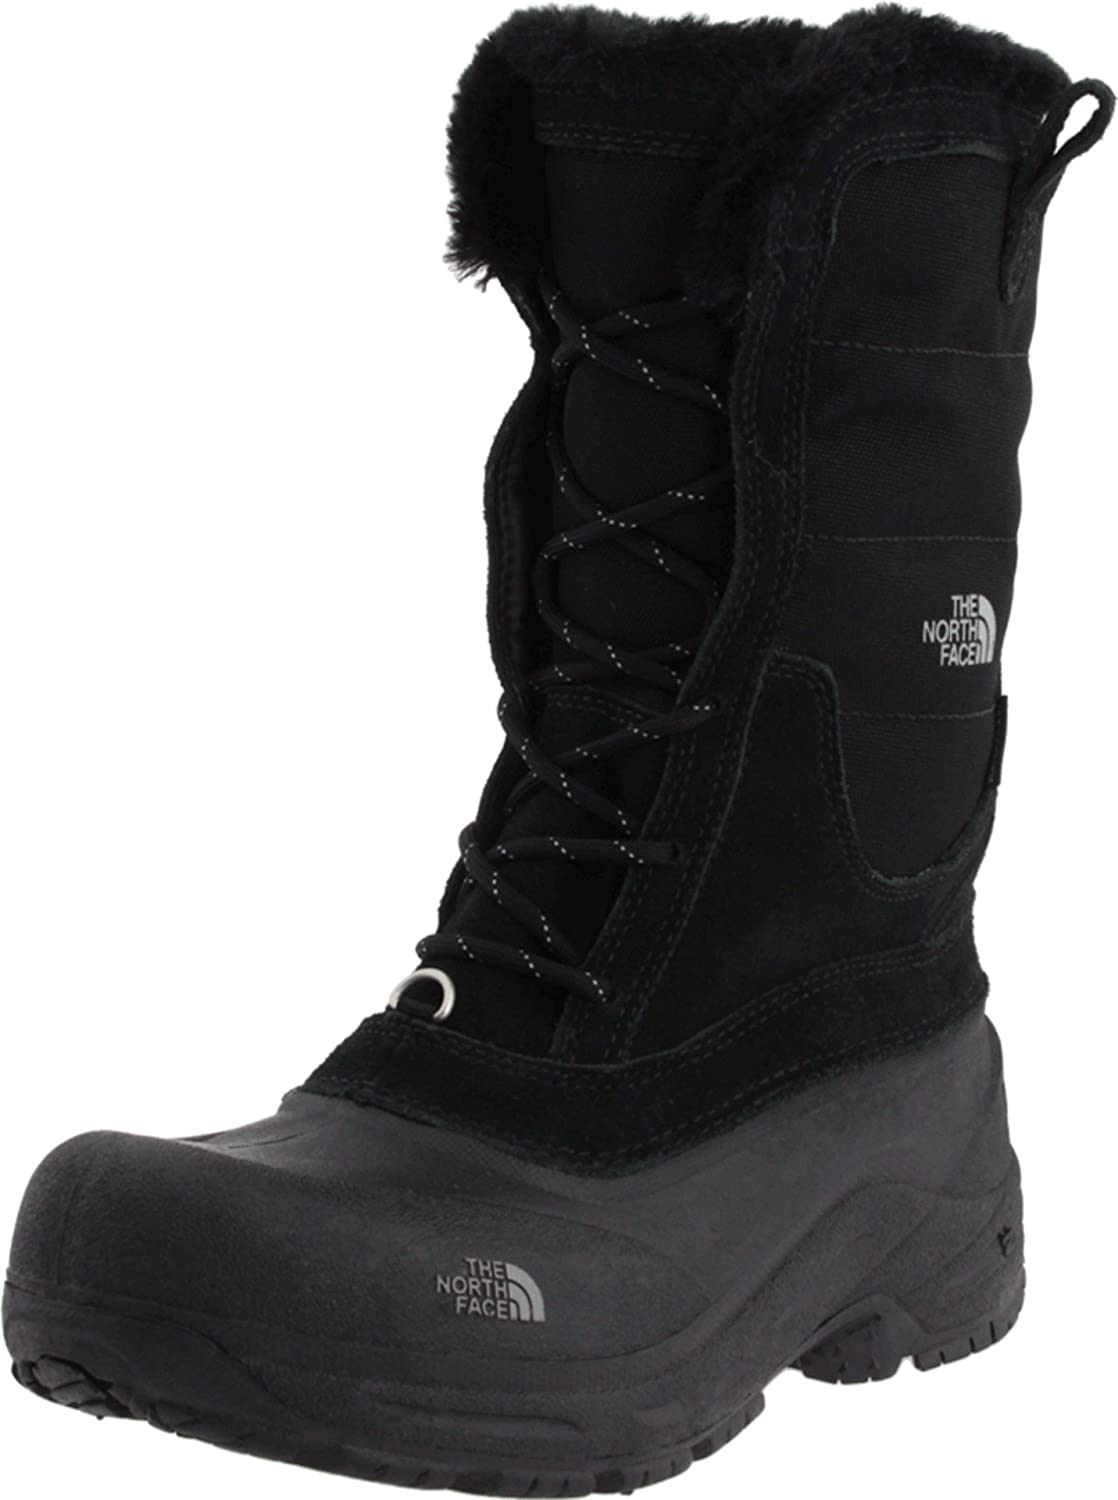 1bed1d7f5 Amazon.com   The North Face Shellista Lace-Up Insulated Boot ...